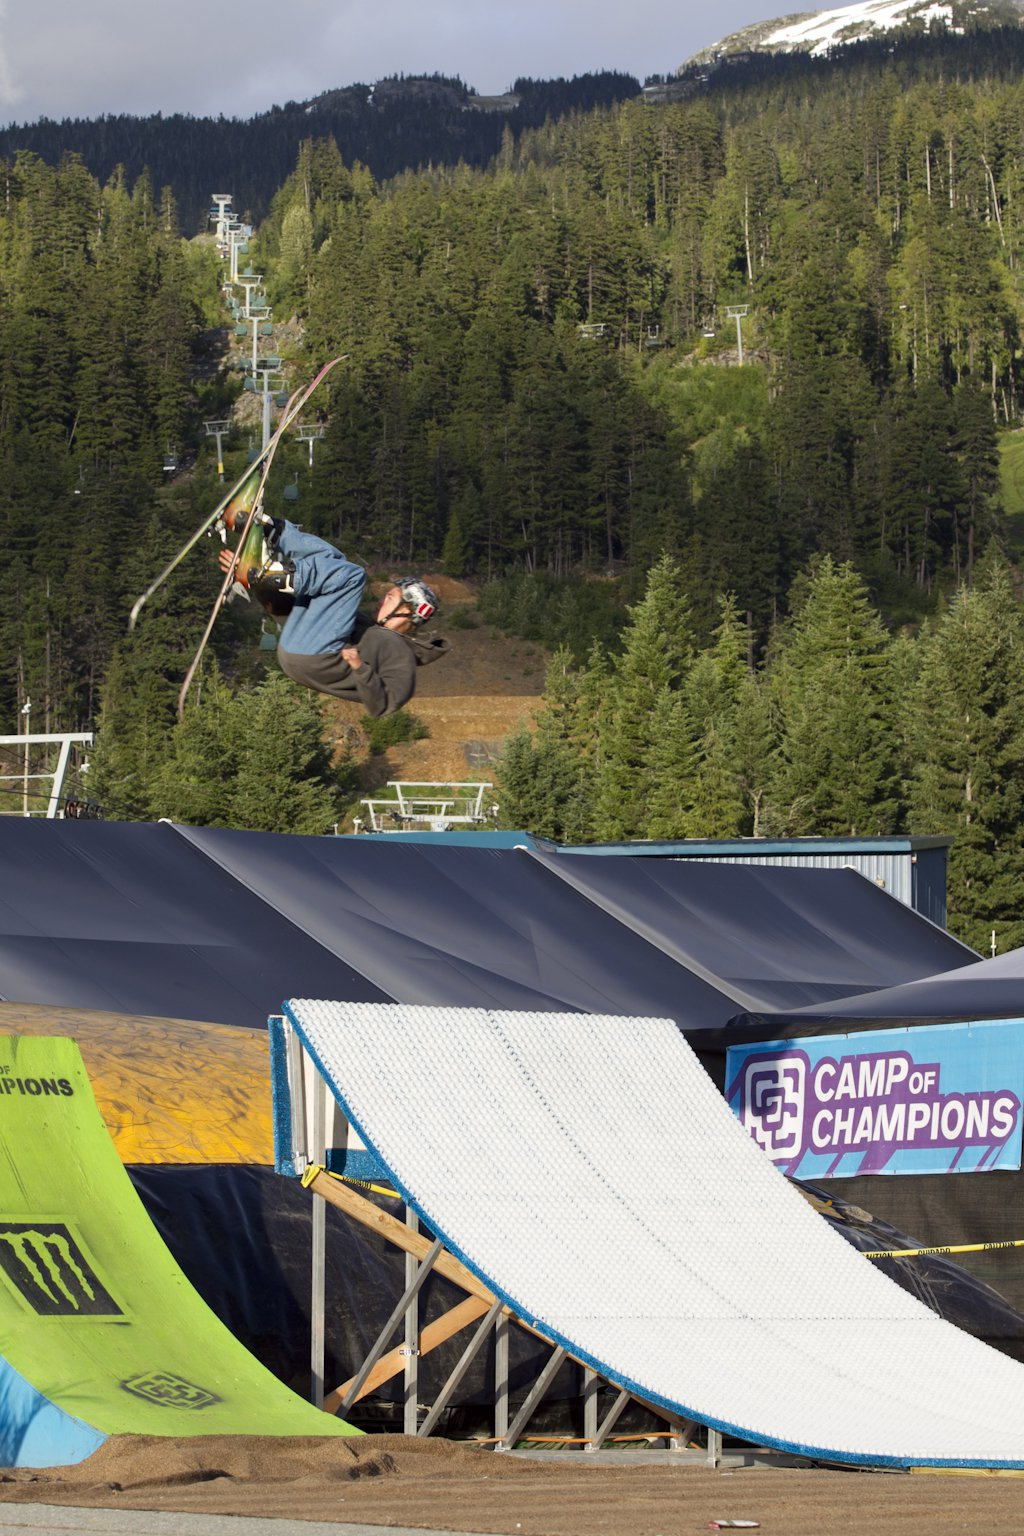 The Camp of Champions - The Launcher - 3 of 15